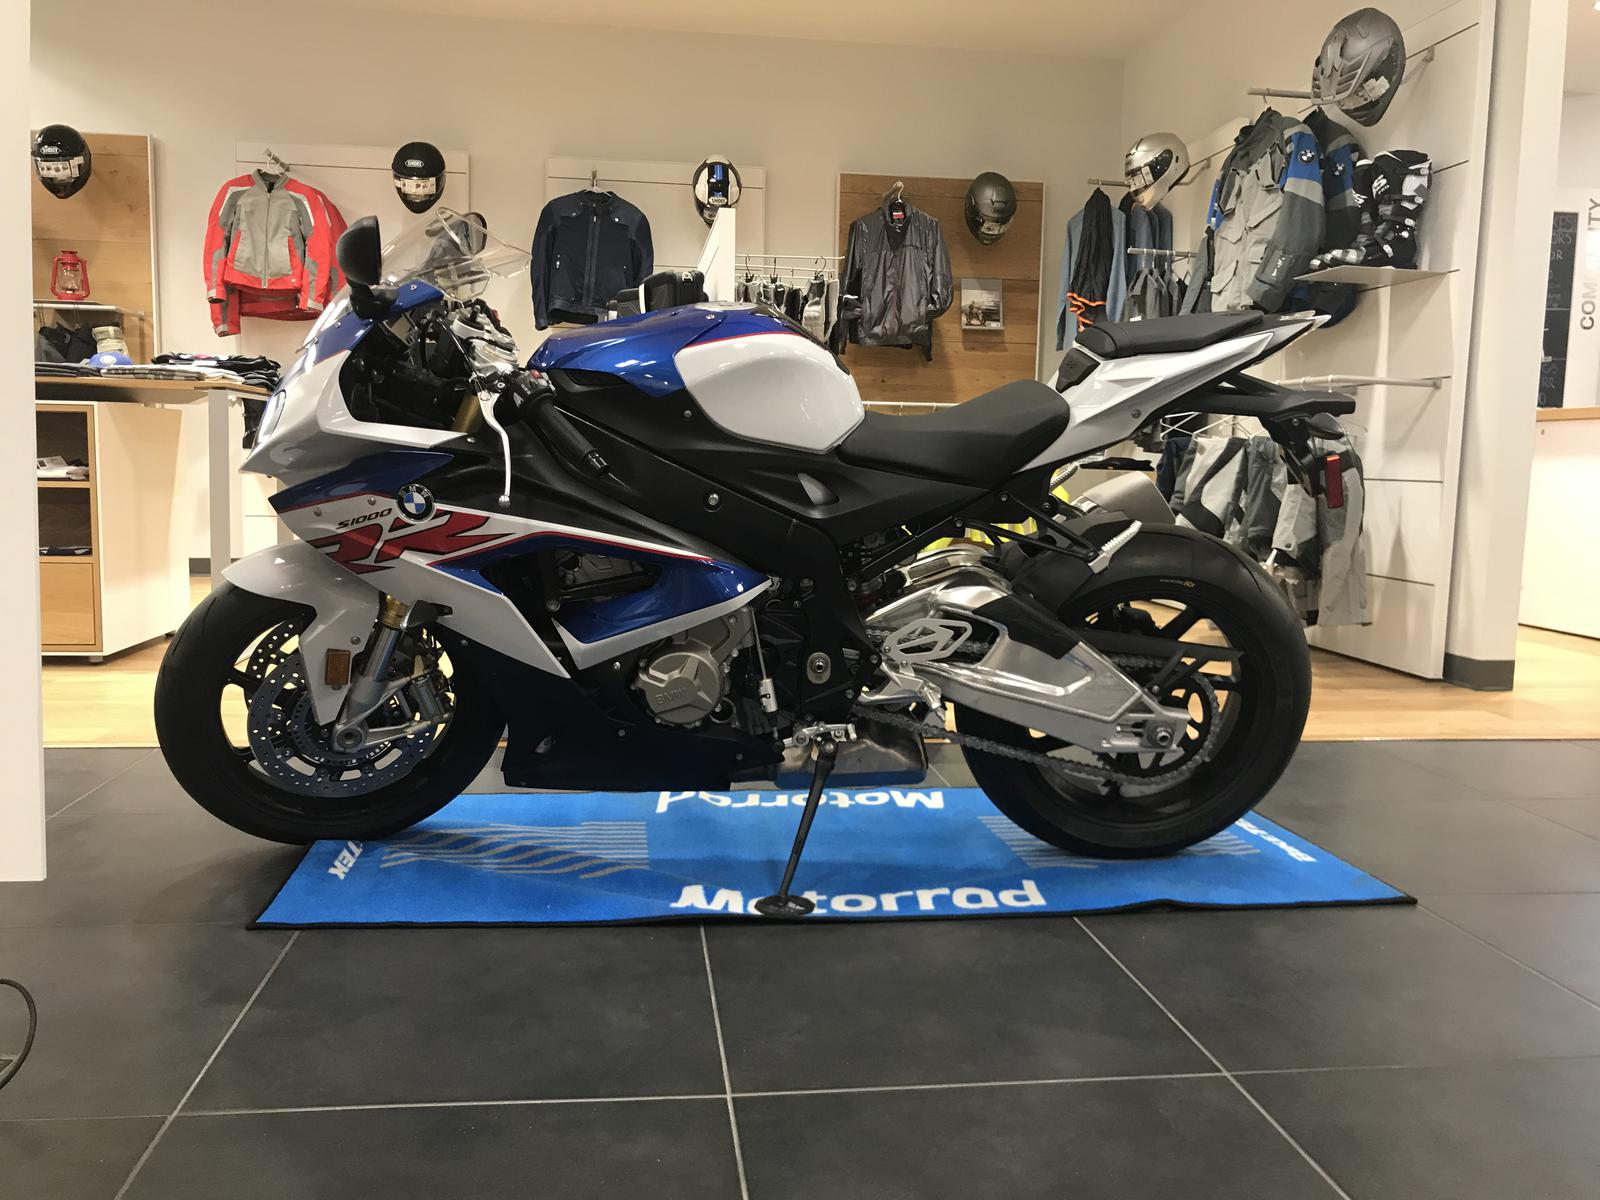 2019 Bmw S1000rr For Sale In Peoria Az Go Az Motorcycles In